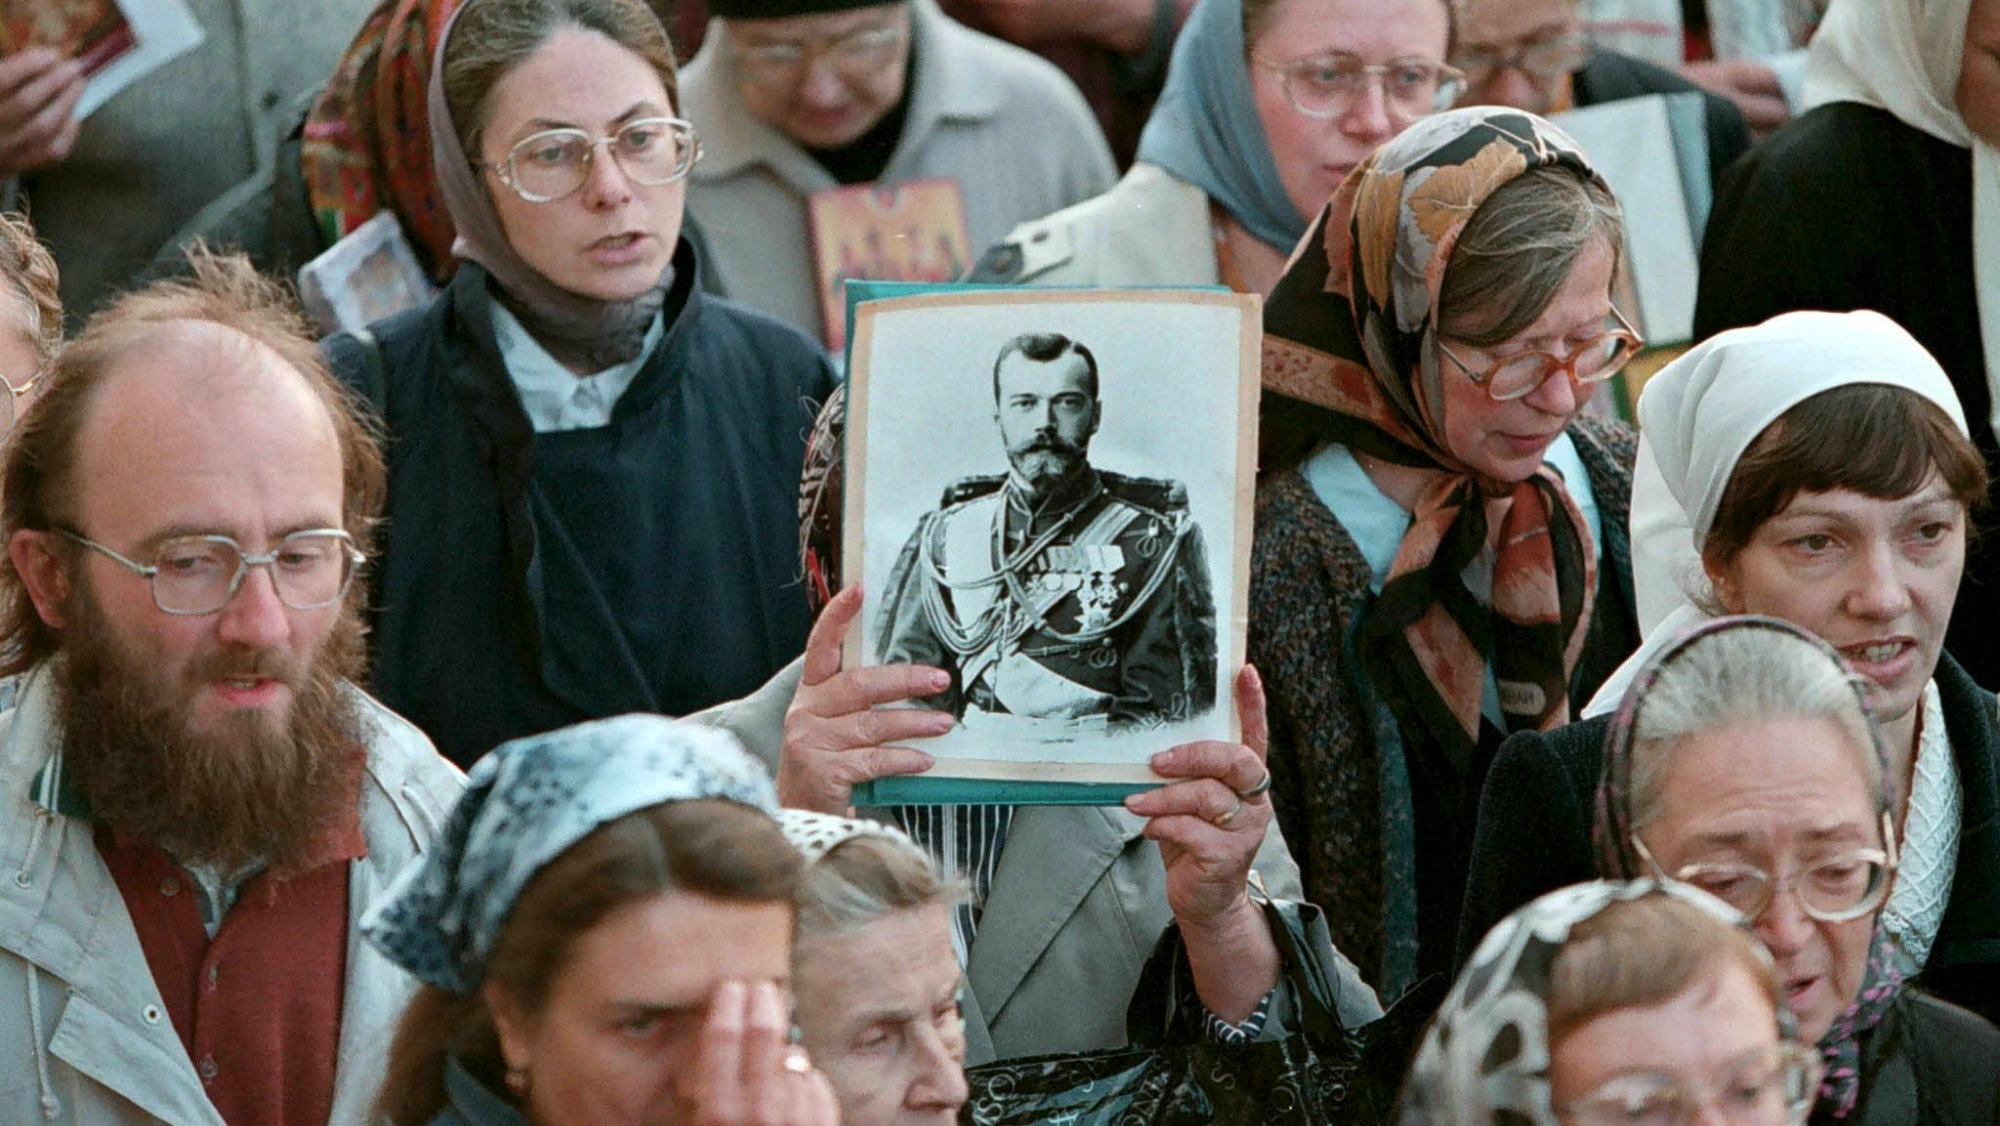 Russian orthodox believers pray and hold a portrait of the last Russian tsar Nicholas II during a religious procession marking a canonization of him by Russian Orthodox church, in downtown St.Petersburg 24 August 2000. Tsar Nicholas and his family, who perished in 1918 at the hands of the Bolsheviks during the Russian revolution, were canonised on 20 August 2000.